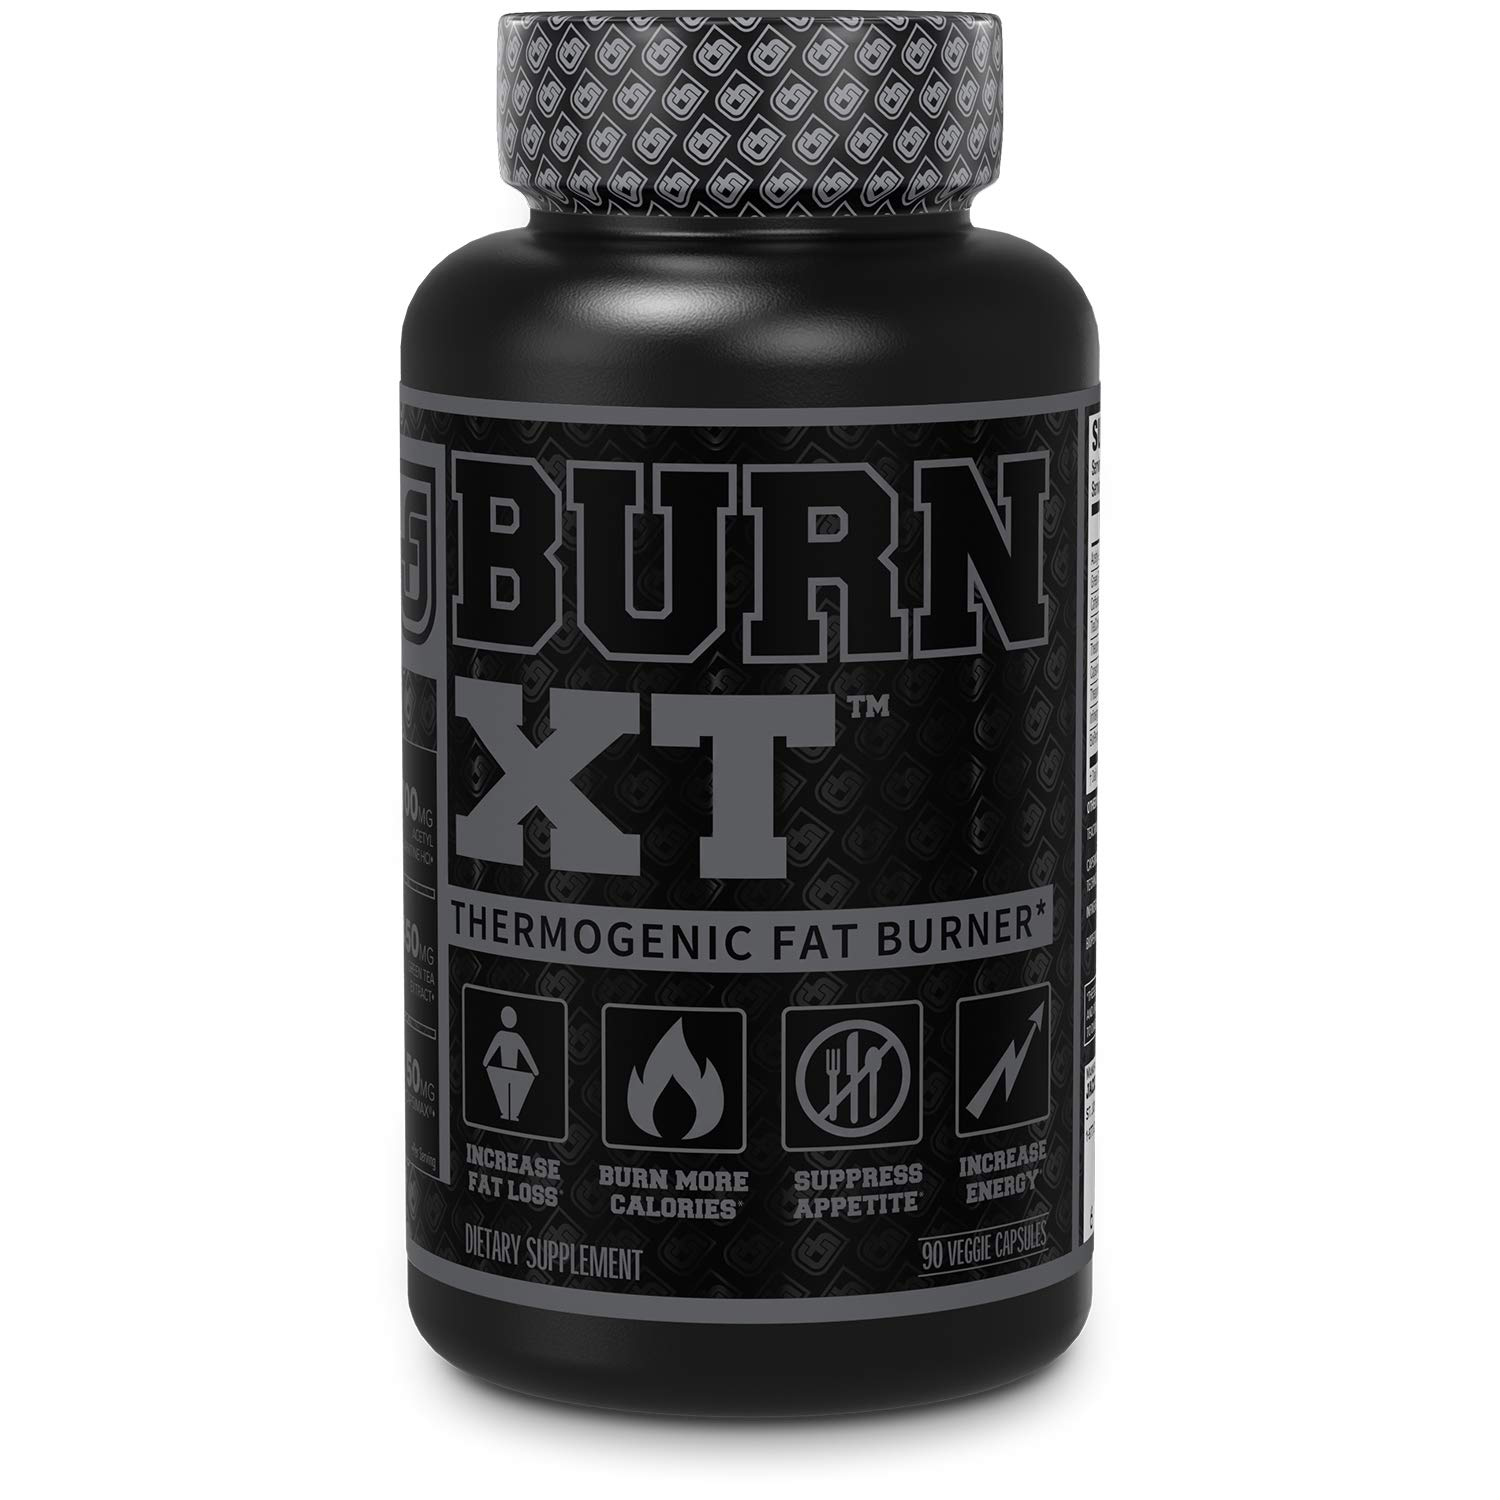 Burn XT Black Thermogenic Fat Burner - Weight Loss Supplement, Appetite Suppressant, Nootropic Energy Booster W/TeaCrine - Premium Acetyl L-Carnitine, Green Tea Extract, Capsimax - 90 Veg Diet Pills by Jacked Factory